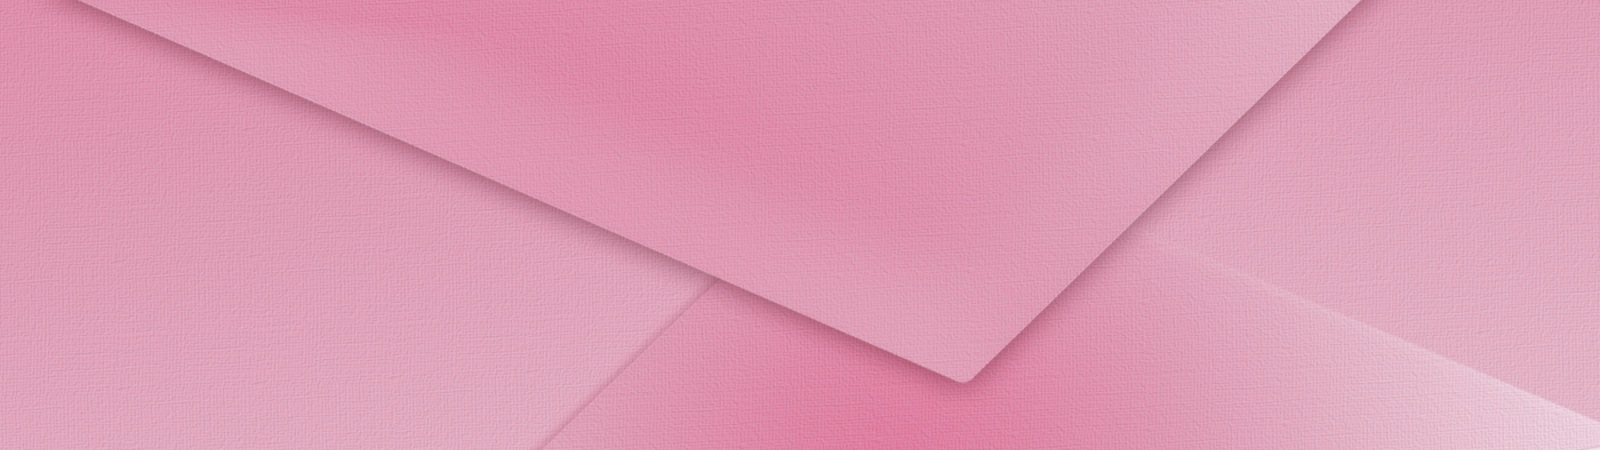 sld_envelope_pink_edited